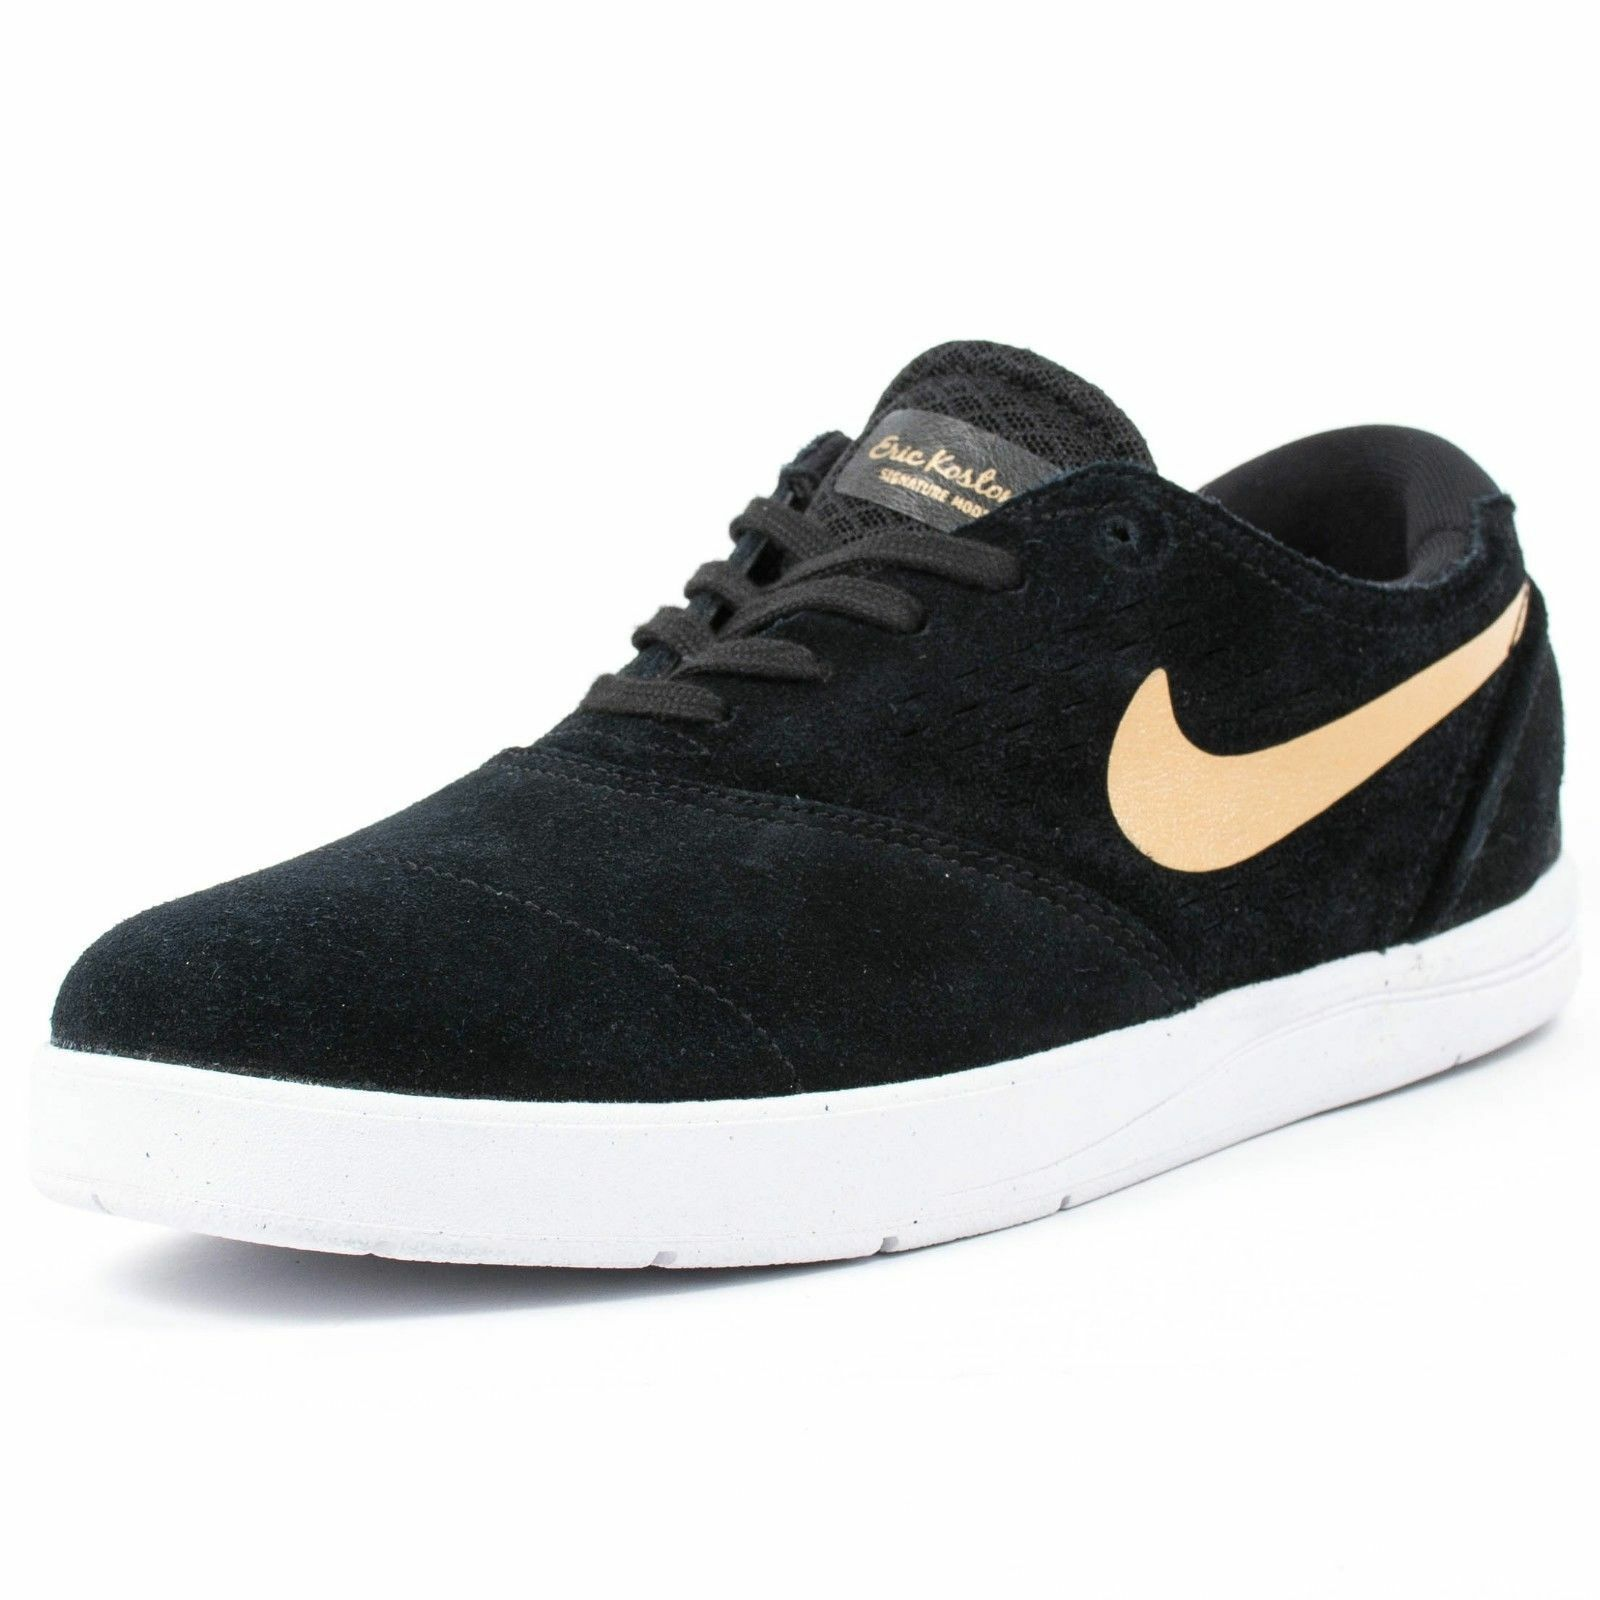 Skate shoes ankle support - Nike Sb Koston 2